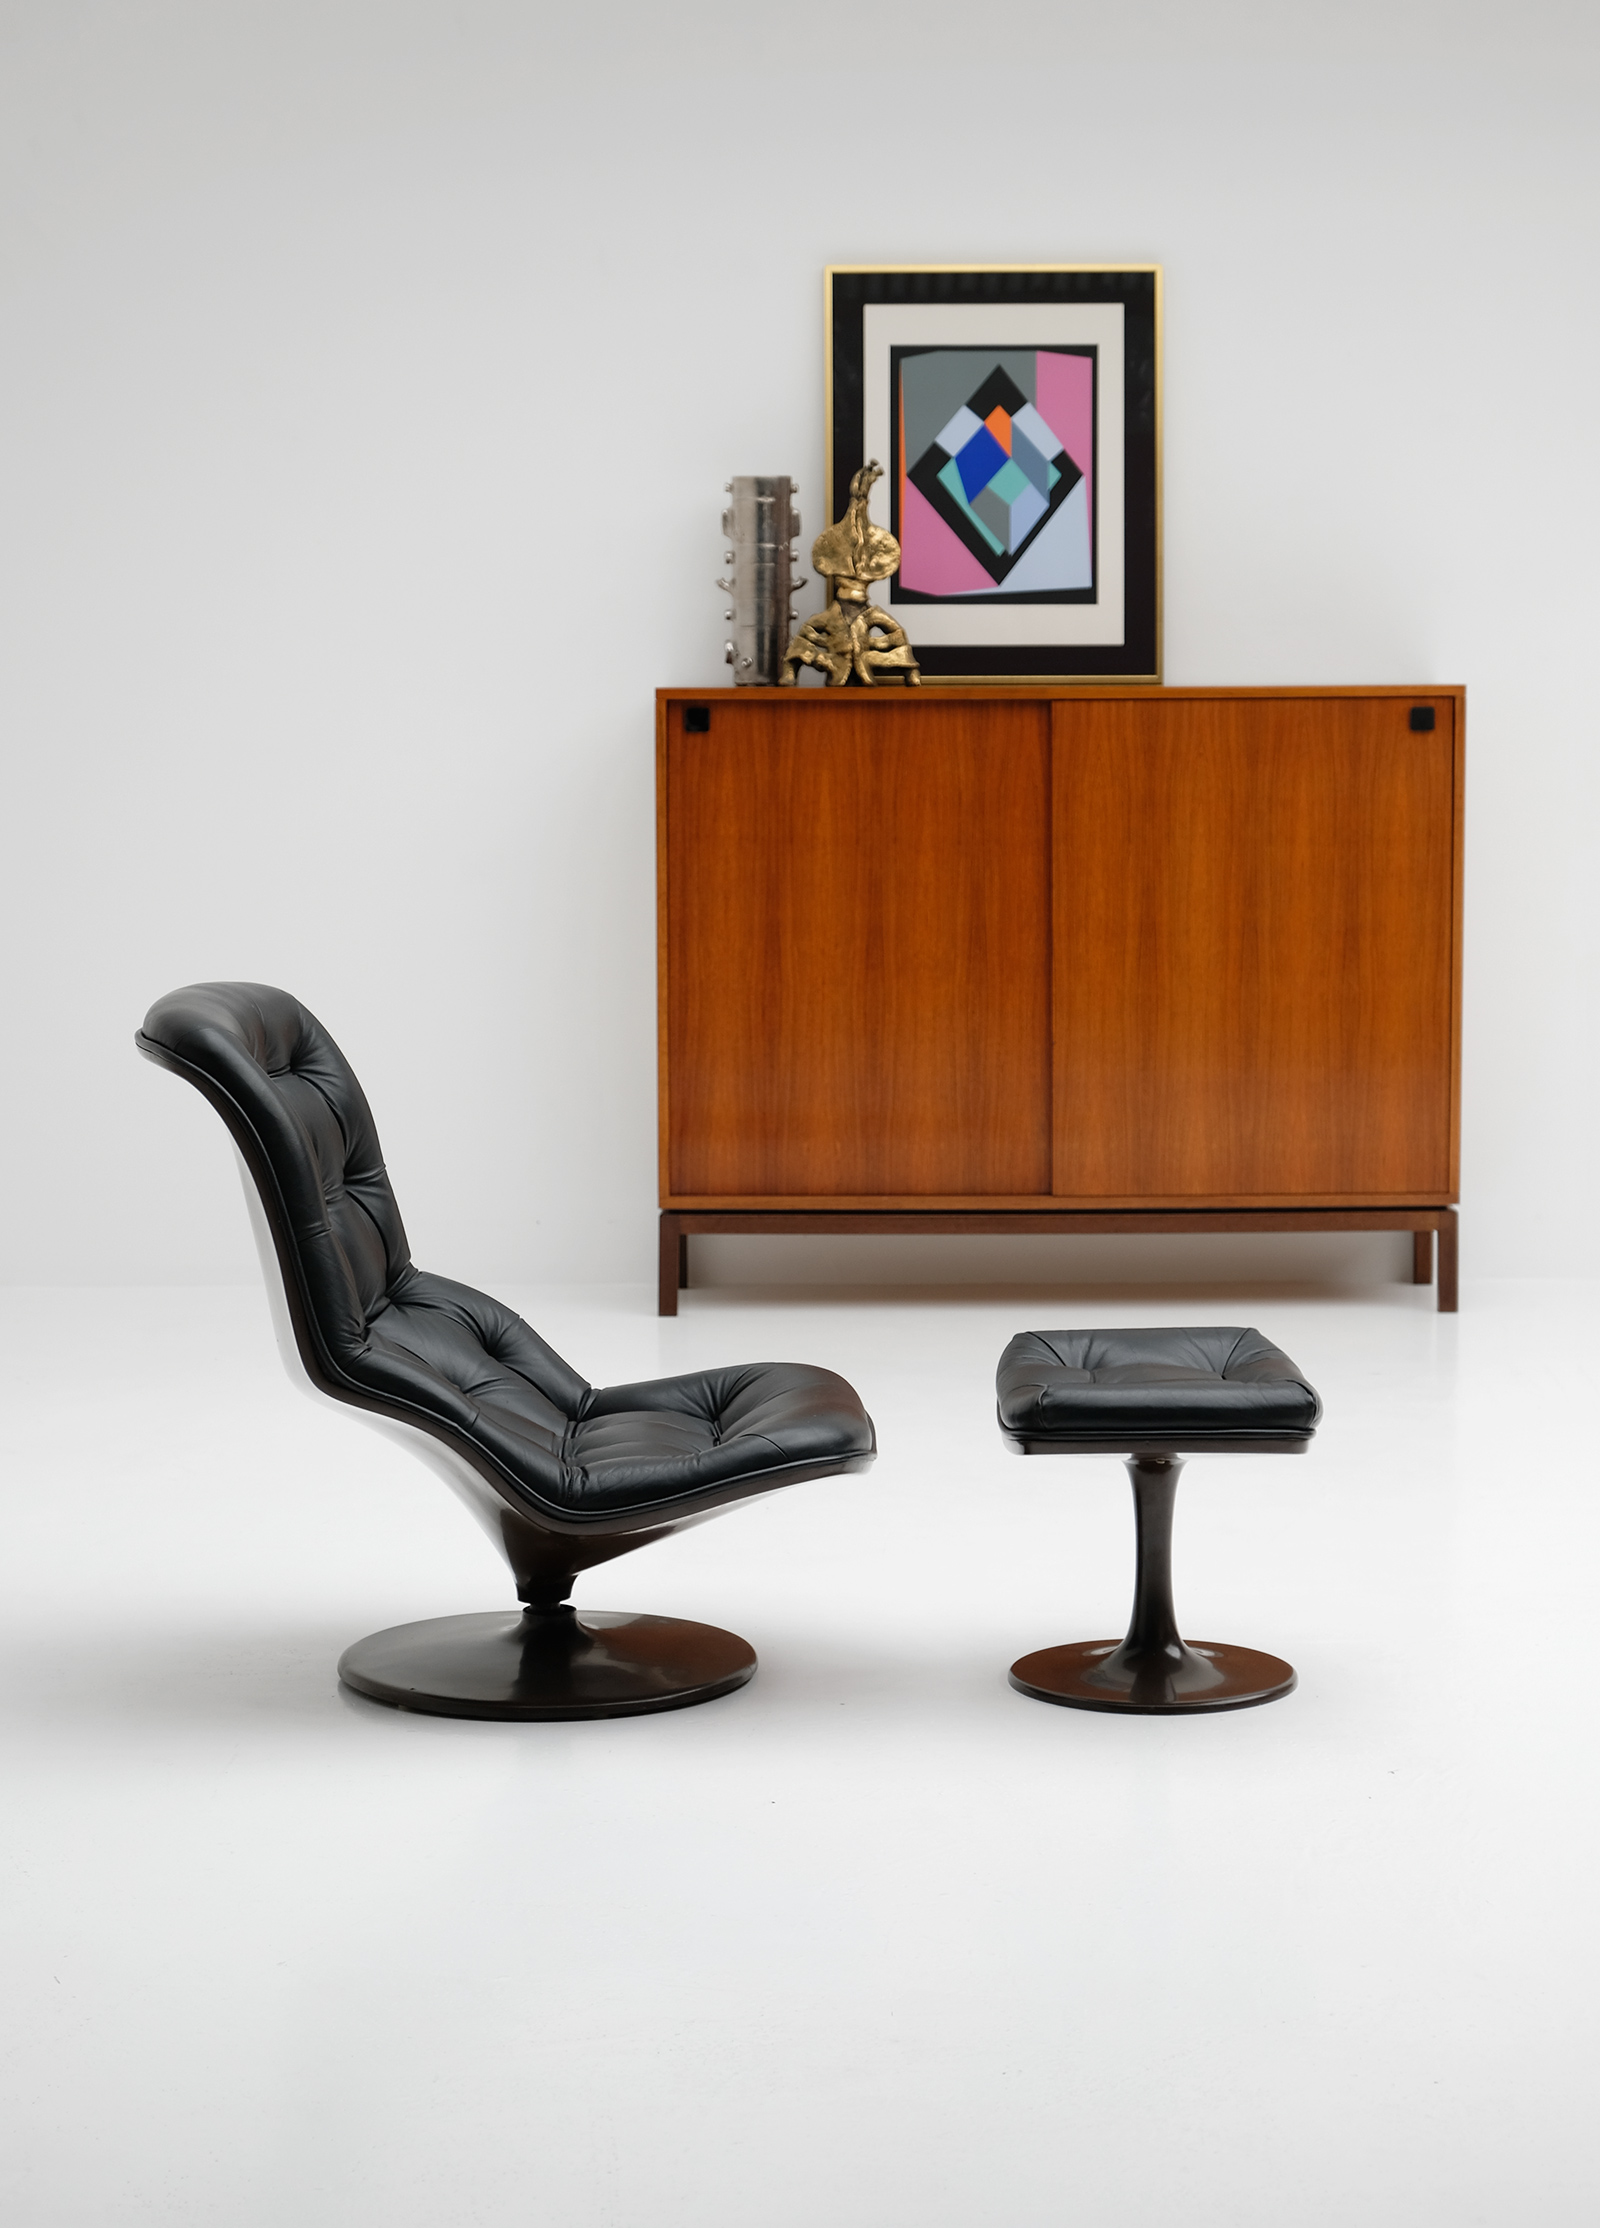 Georges Van Rijck Shelby Lounge chairimage 1